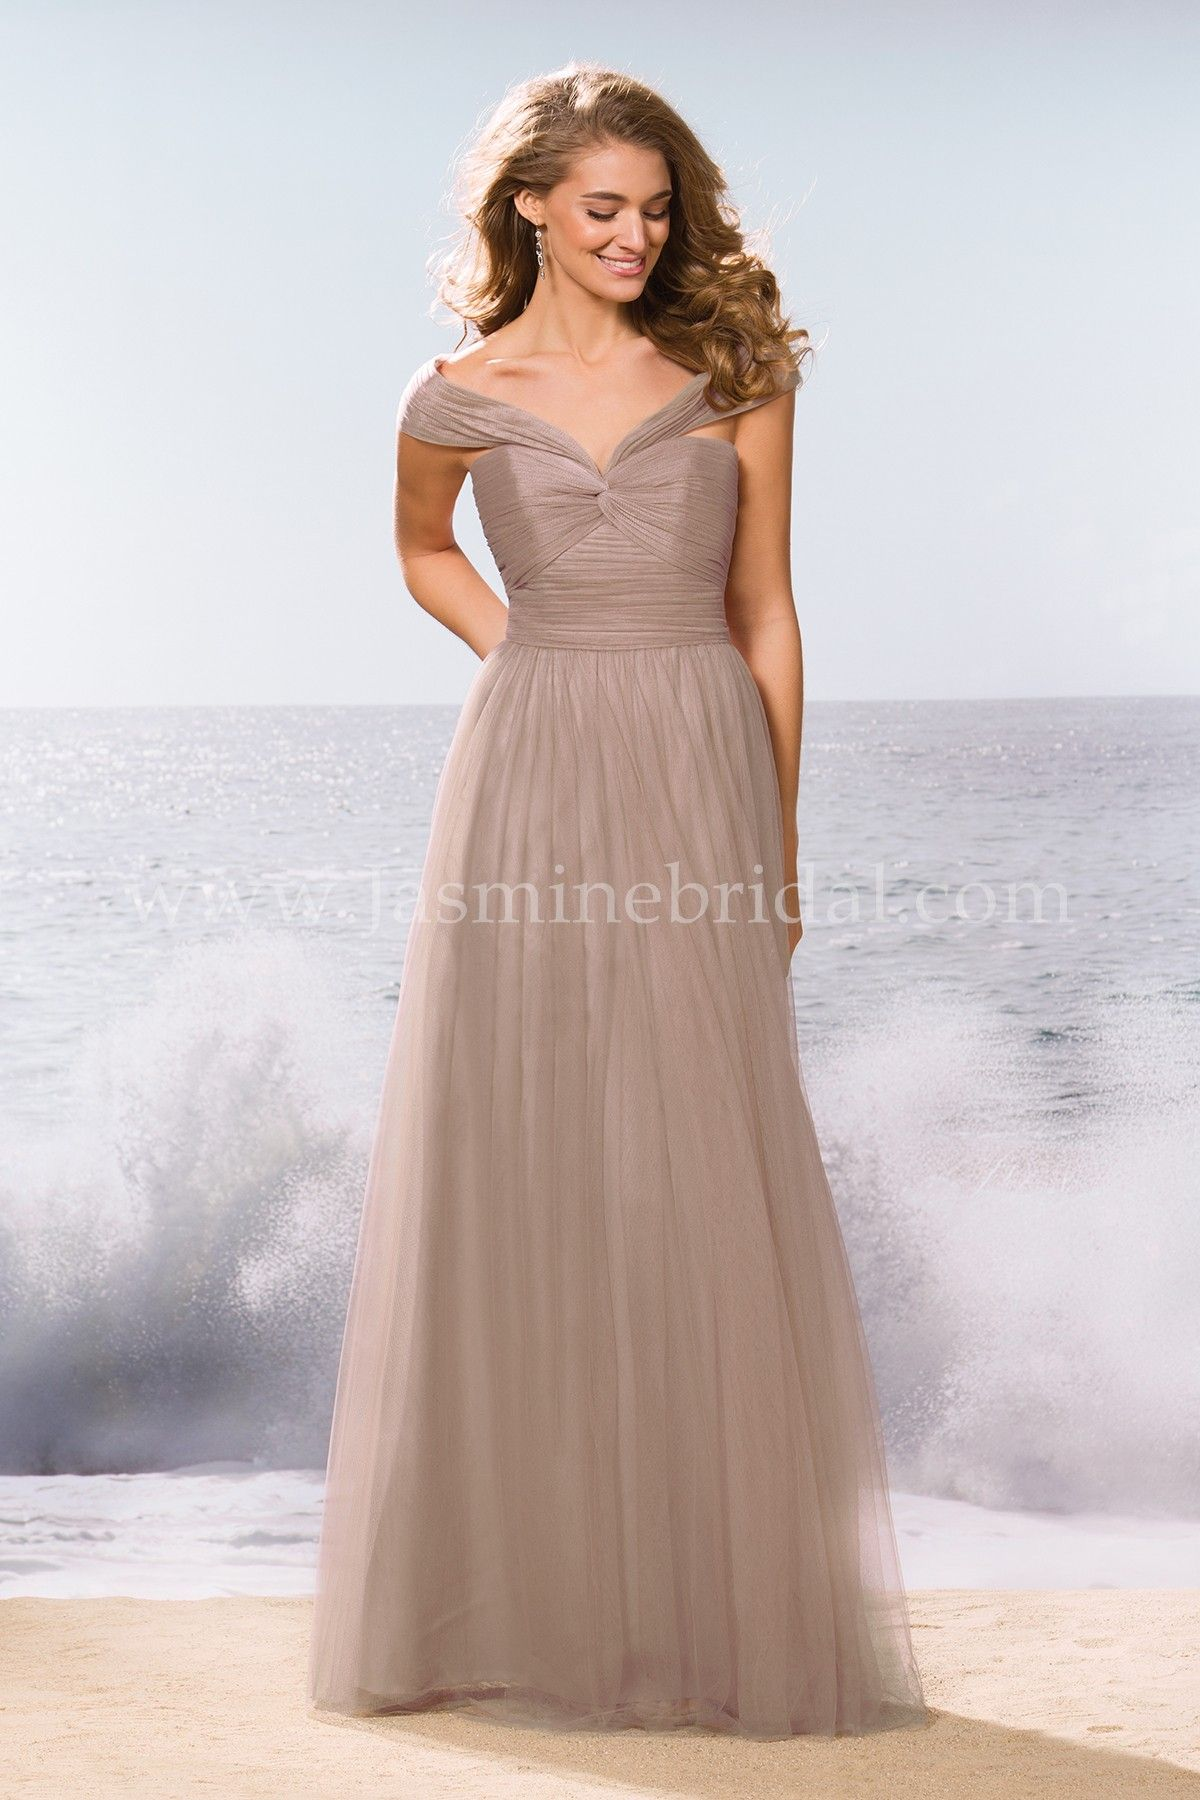 Jasmine bridal bridesmaid dress belsoie style l174063 in sandbar jasmine bridal bridesmaid dress belsoie style l174063 in sandbar a youthful soft tulle dress ombrellifo Images